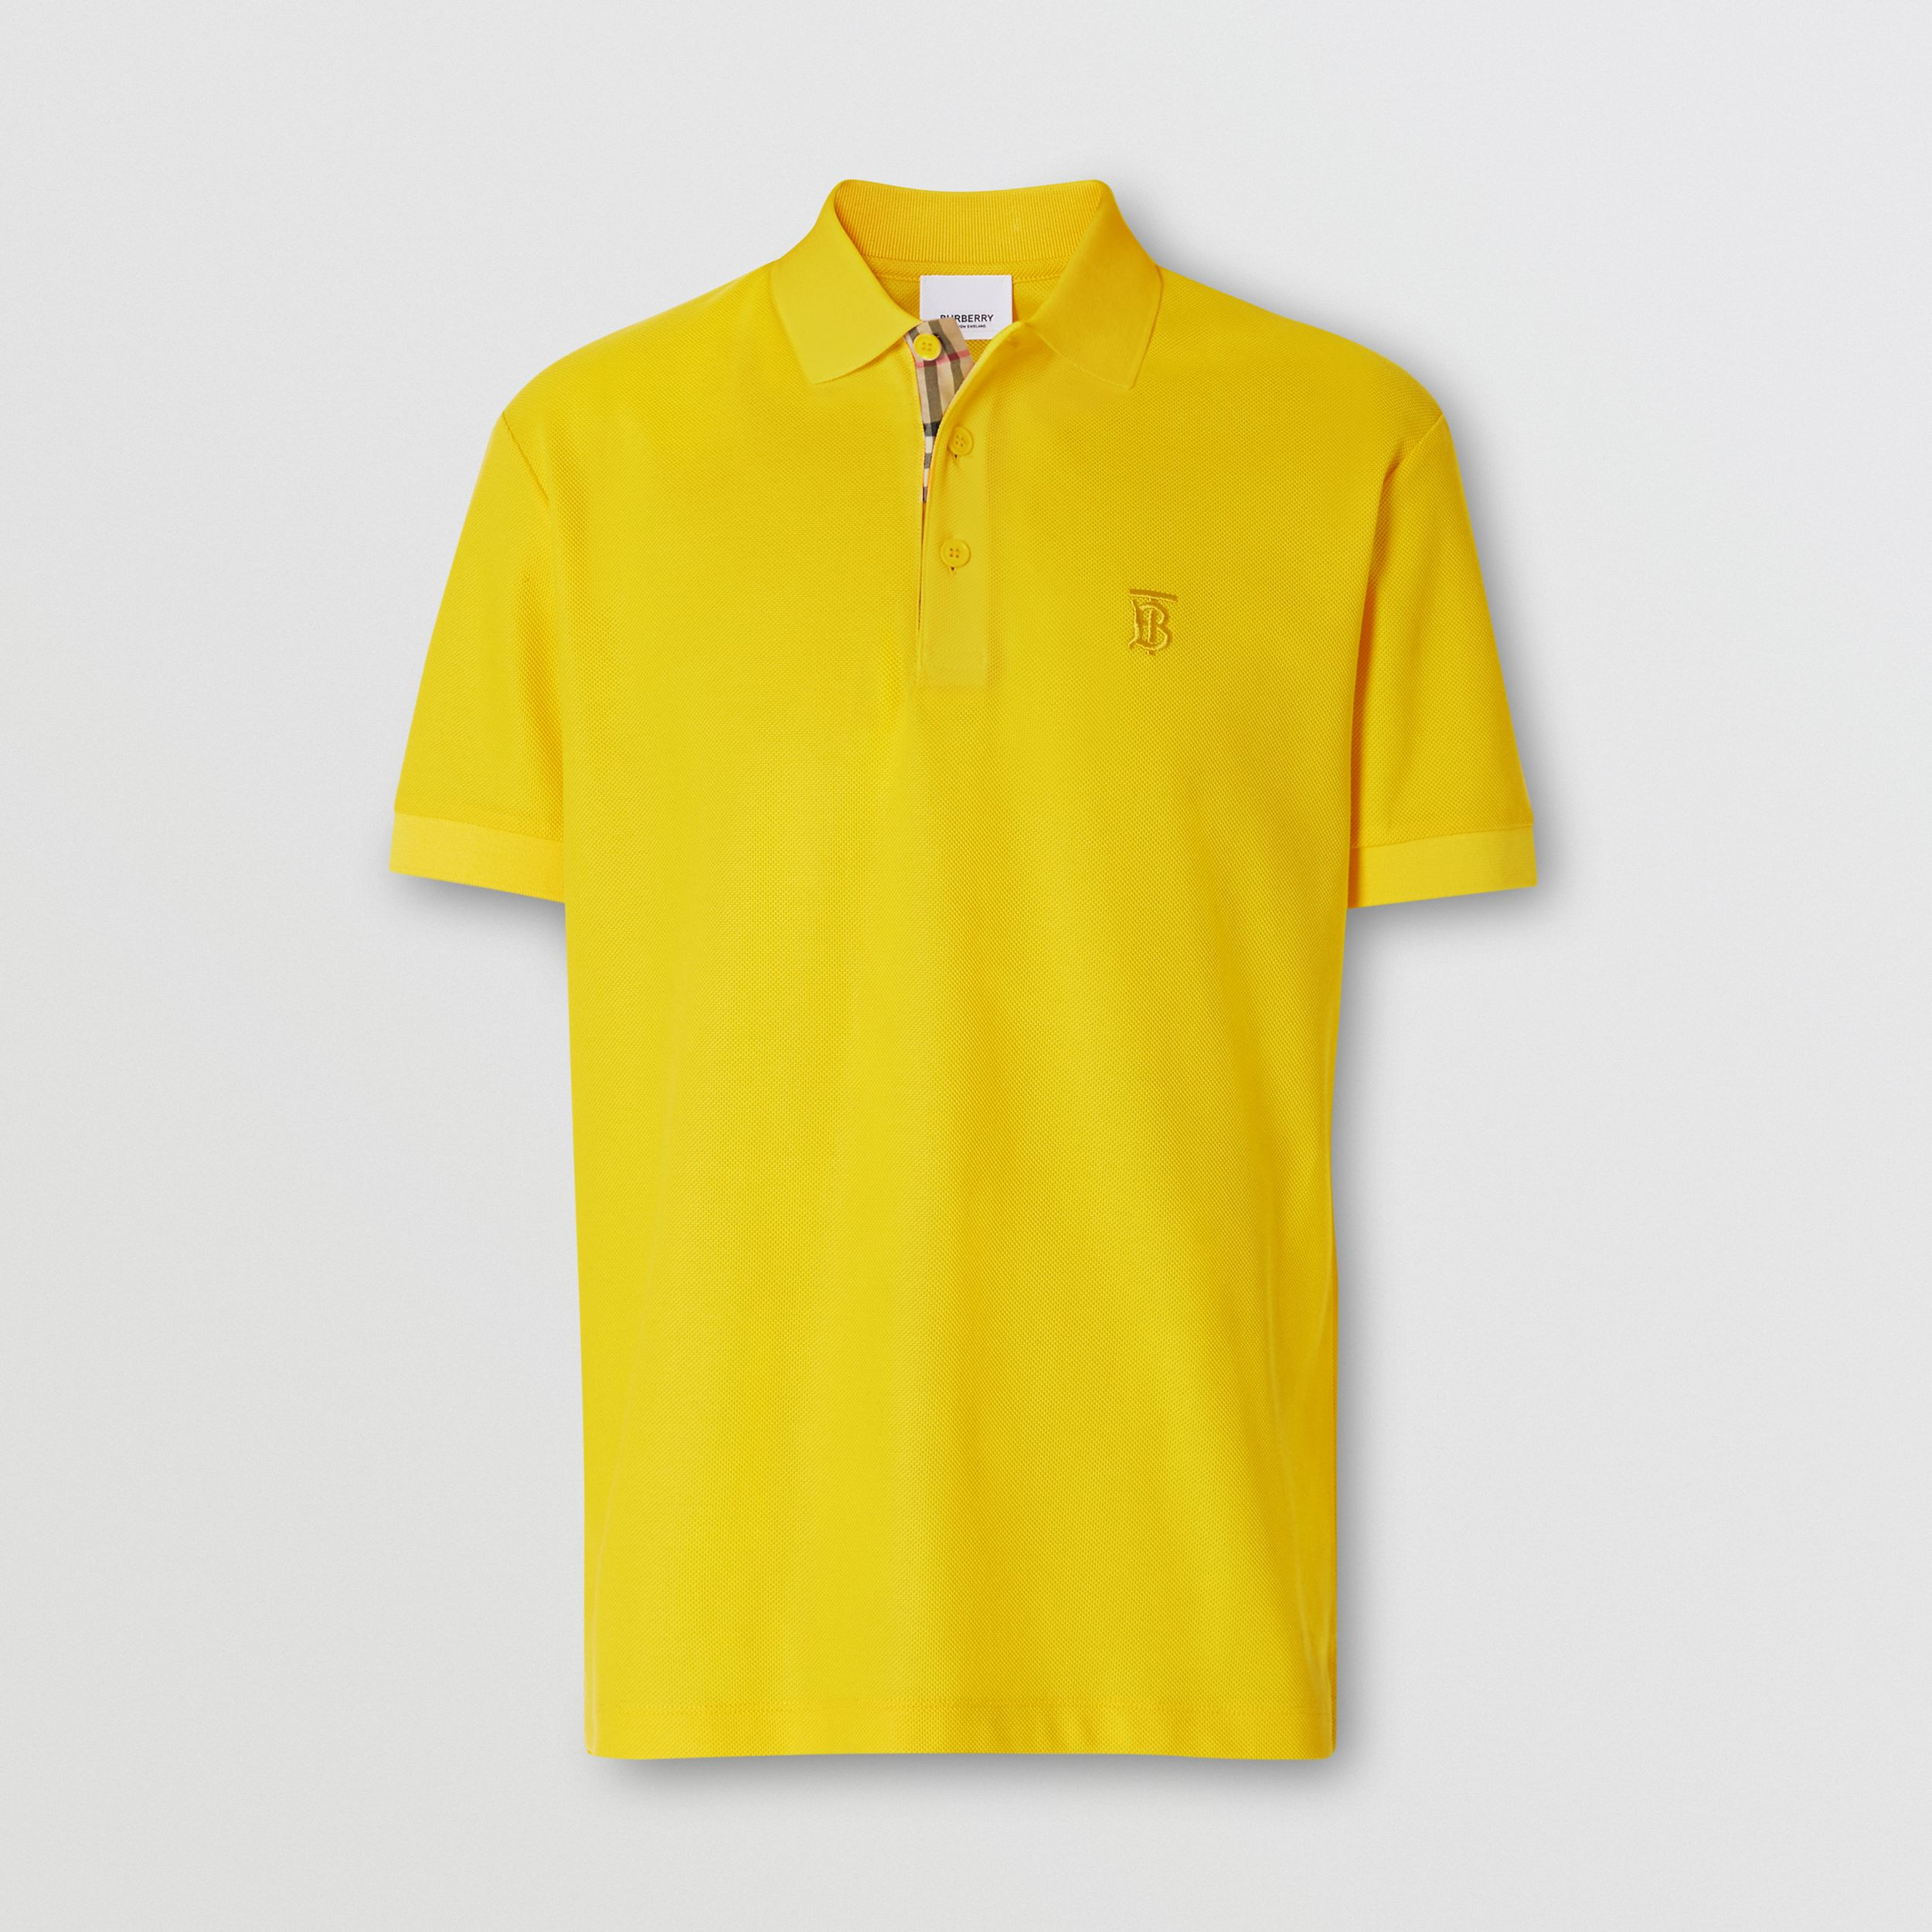 Monogram Motif Cotton Piqué Polo Shirt in Canary Yellow - Men | Burberry - 4